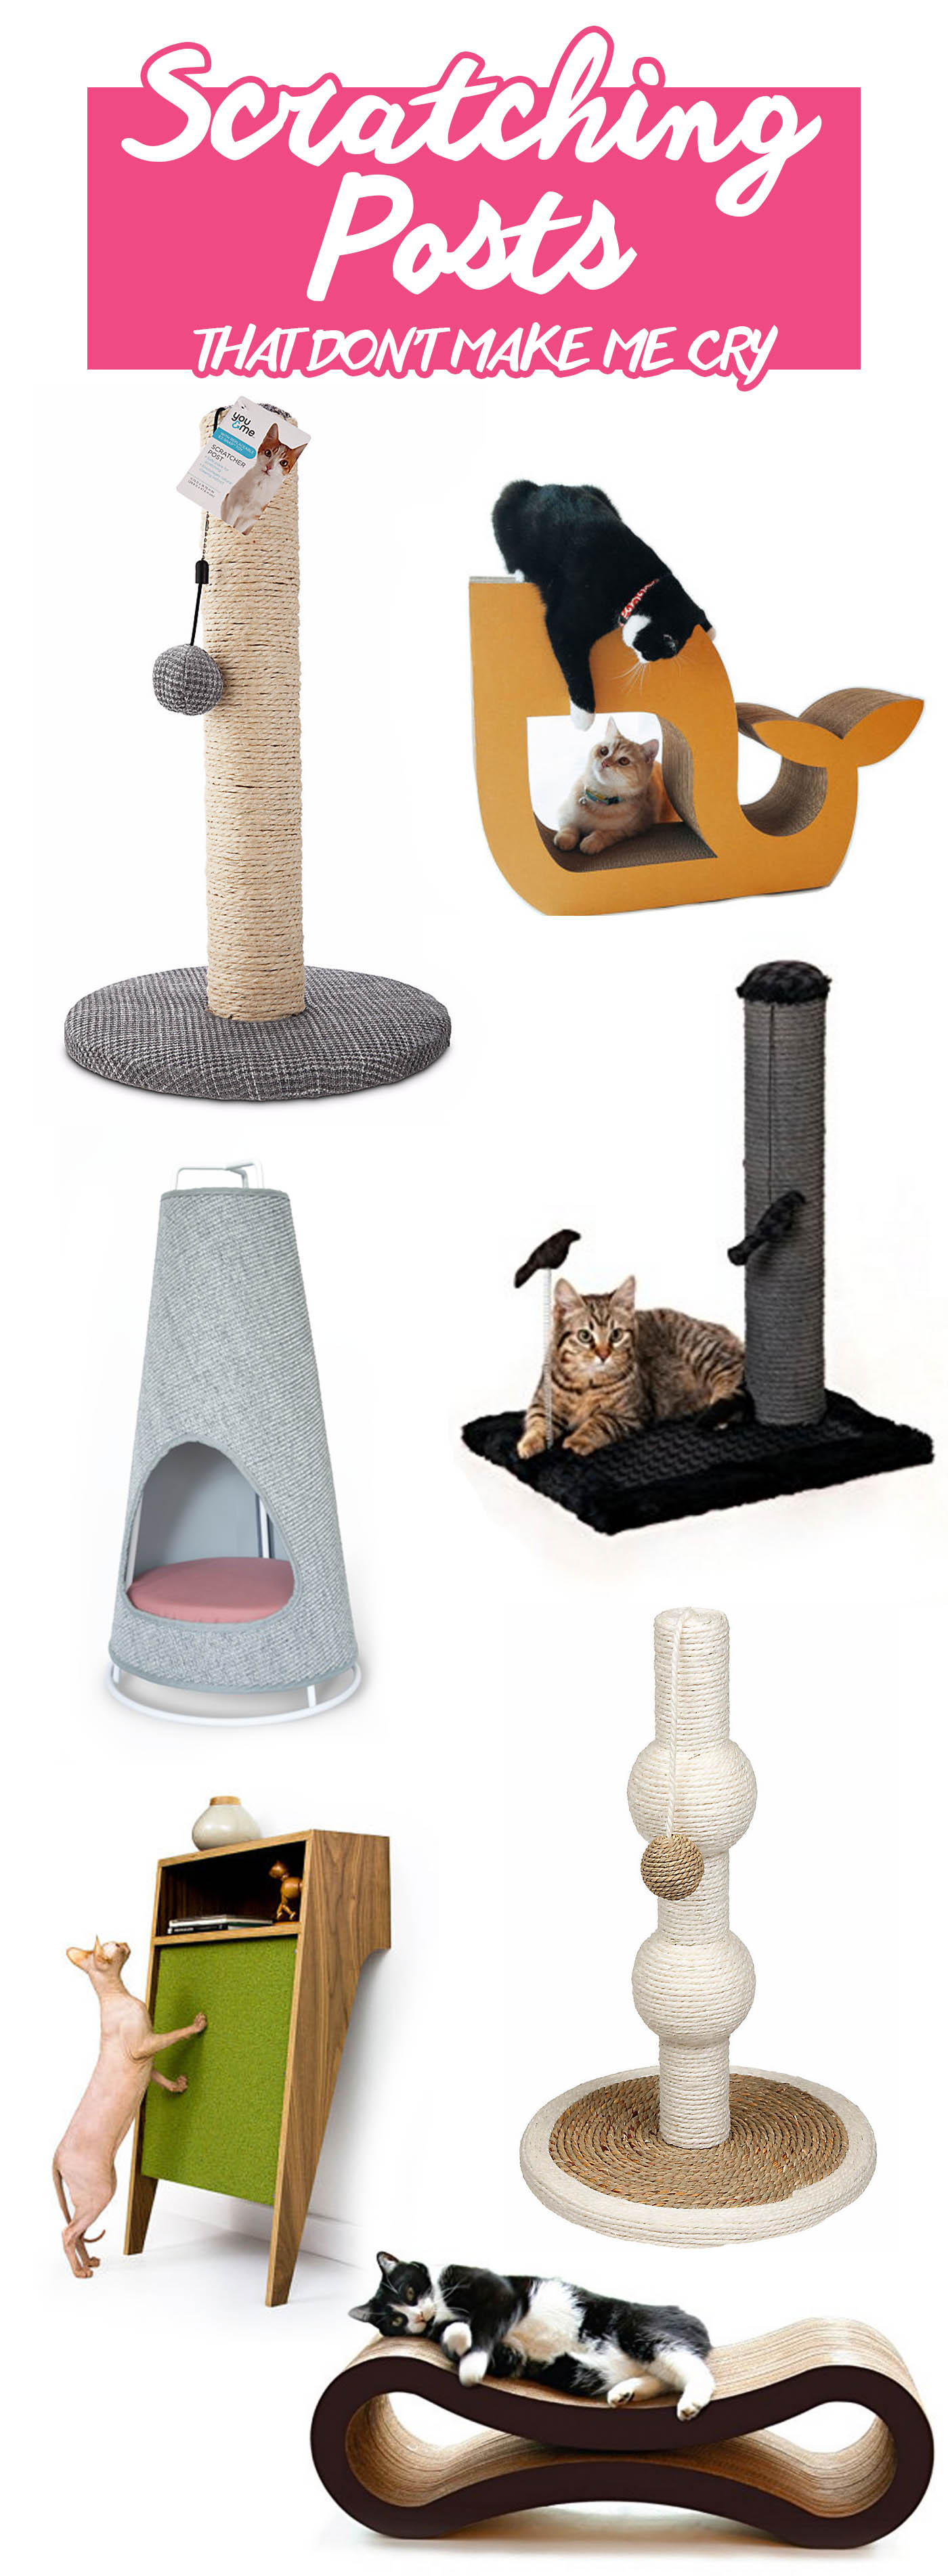 Modern cat scratching posts that don't make me cry. | Unique scratching posts that won't clash with your decor. | Modern Cat Supplies that Don't Make Me Cry